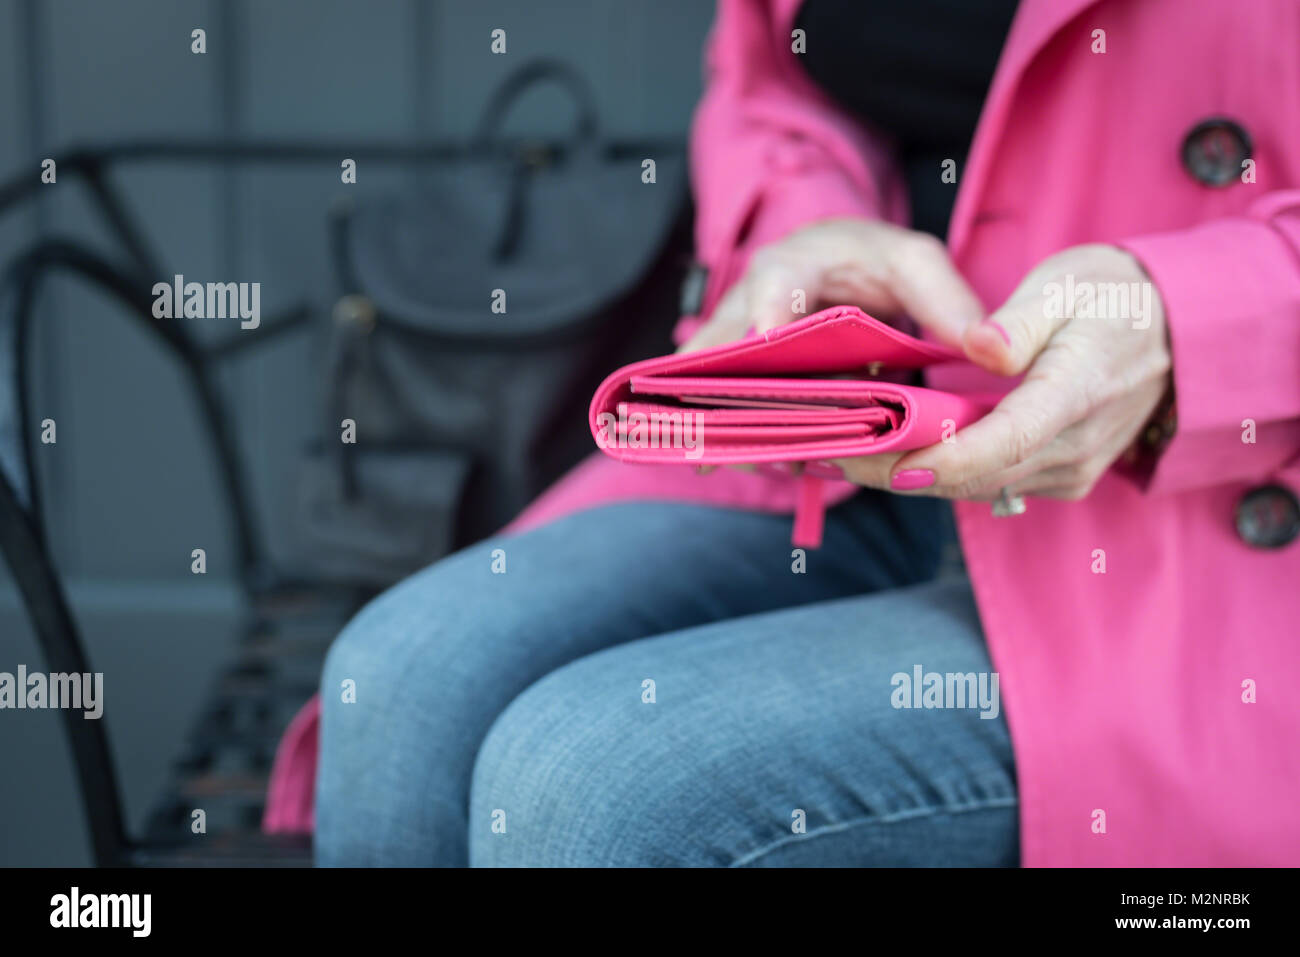 woman sitting on bench wearing coordinating pink coat, wallet and nail polish - Stock Image